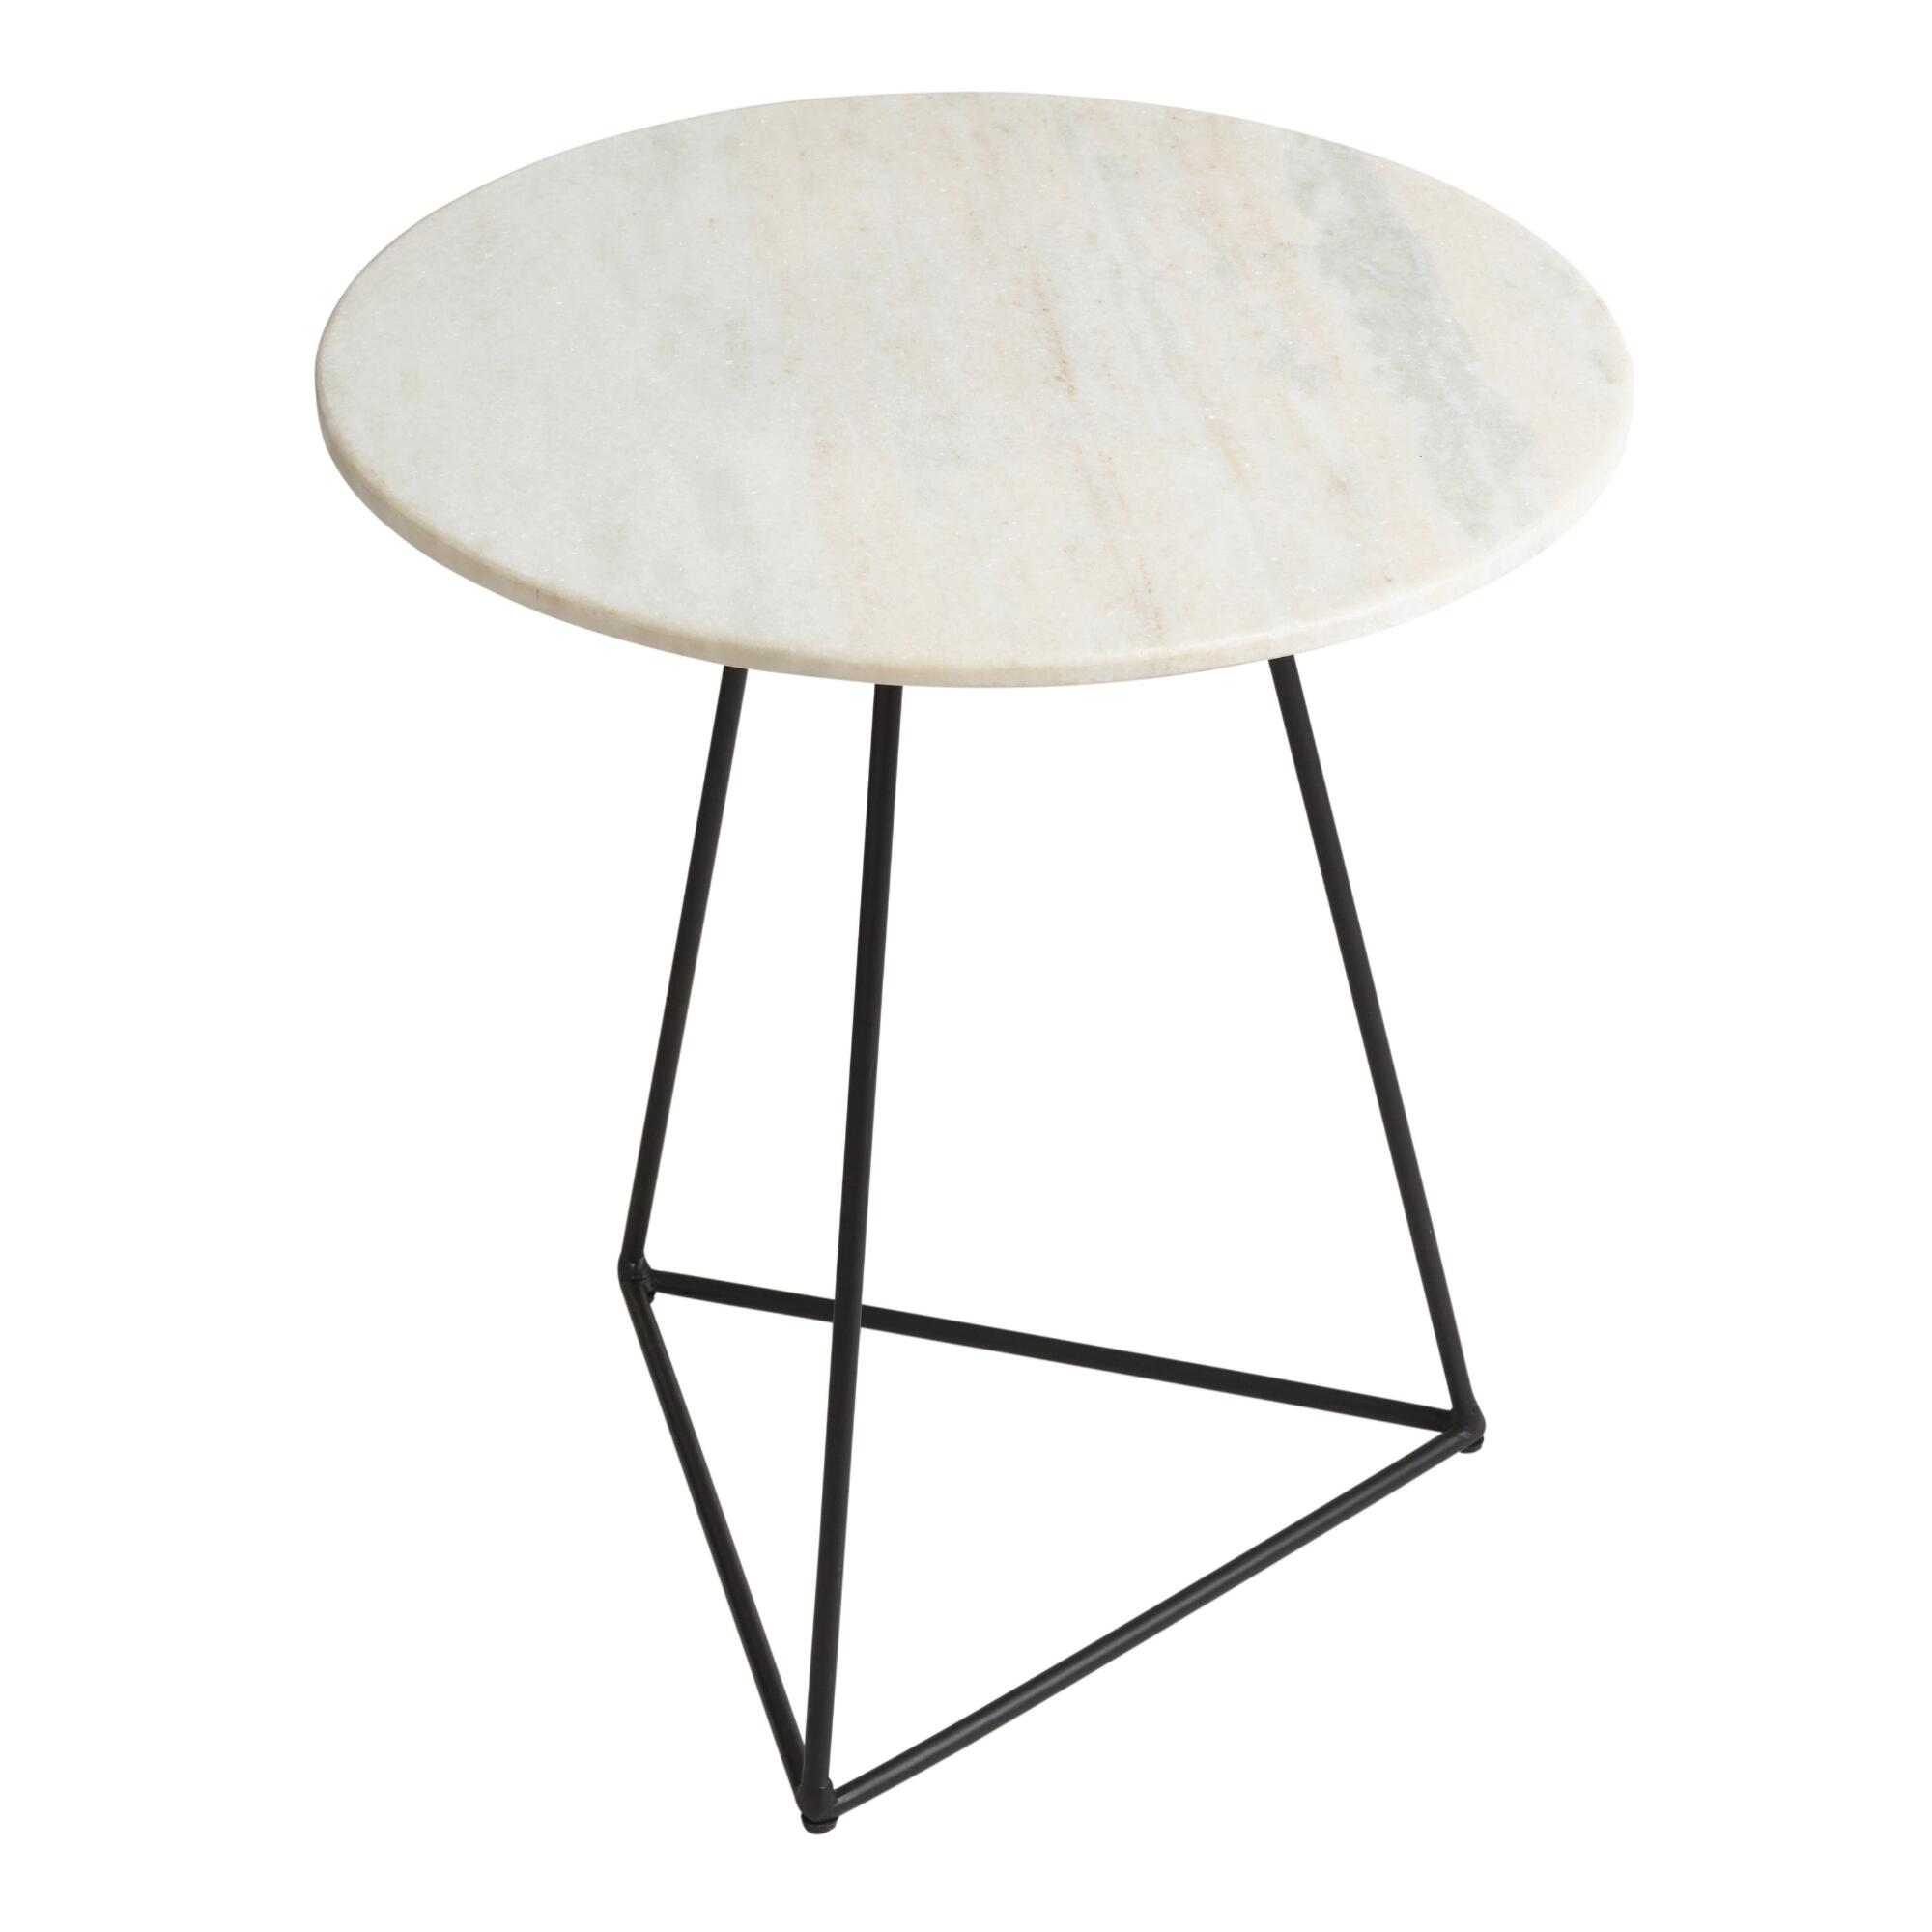 White Marble and Metal Round Accent Table. Coffee Tables   Affordable End Tables   World Market